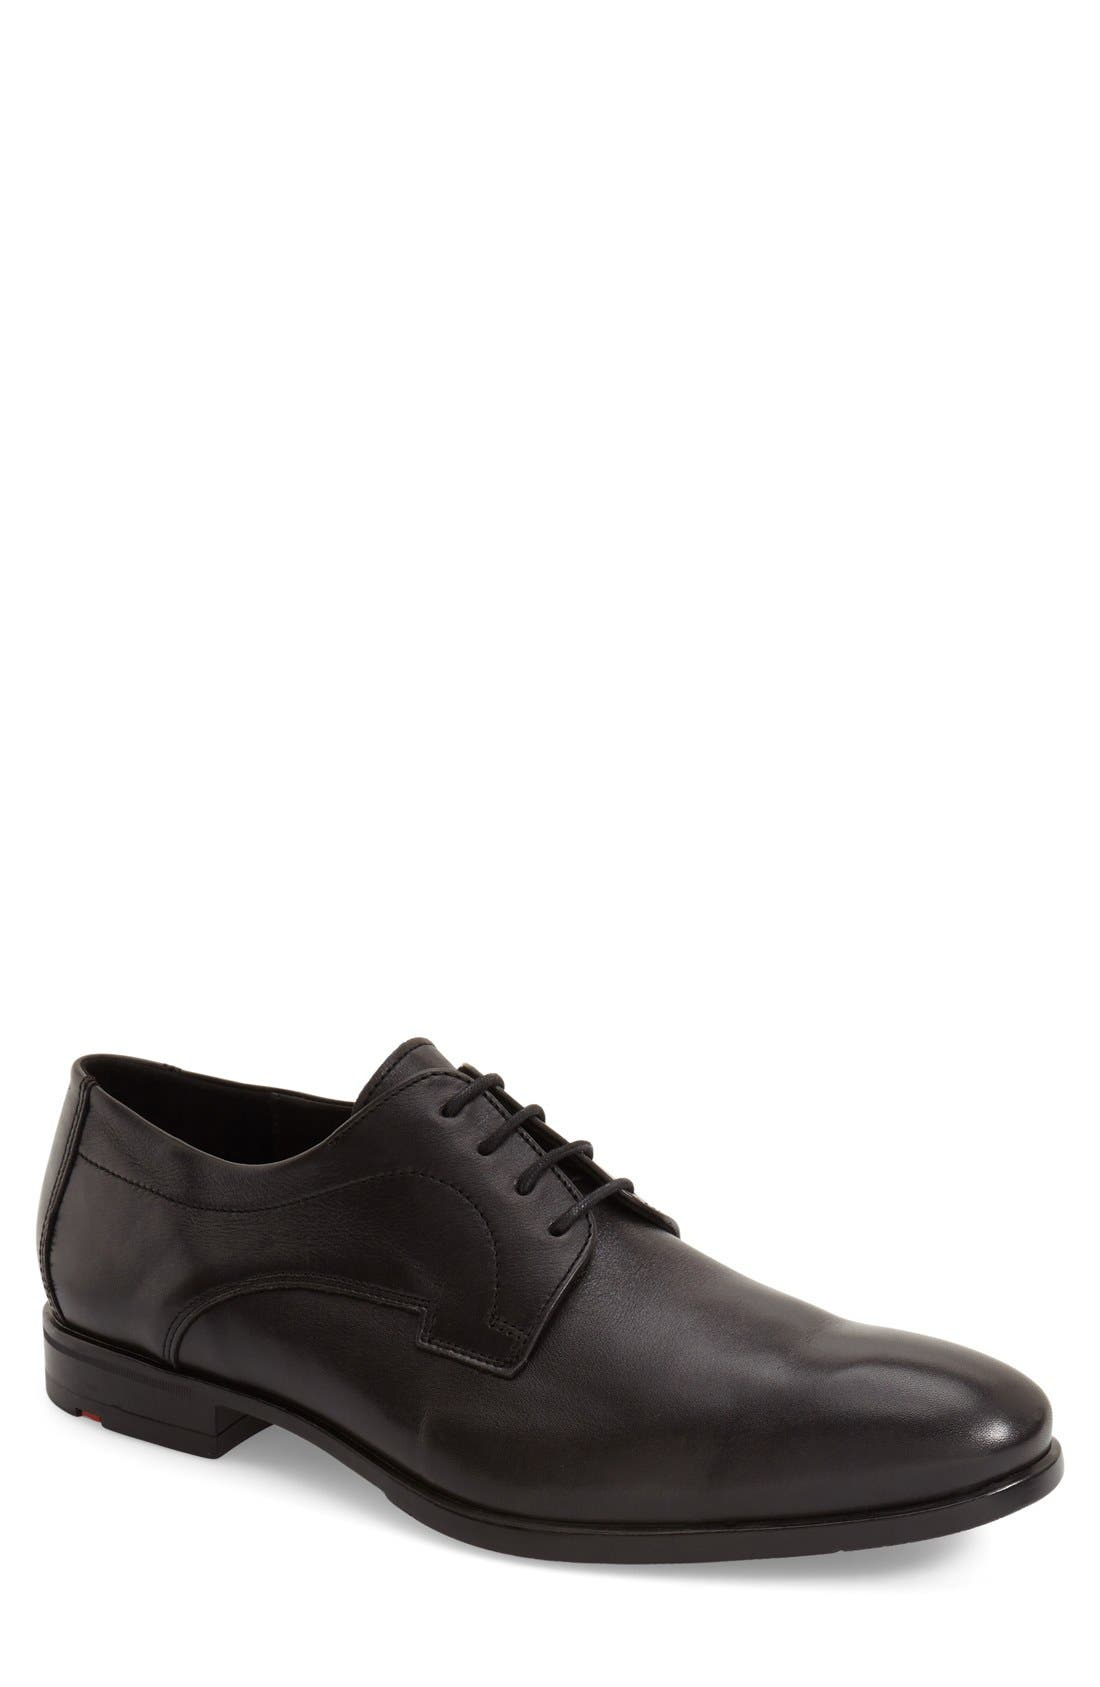 Lloyd 'Recit' Plain Toe Derby (Men)